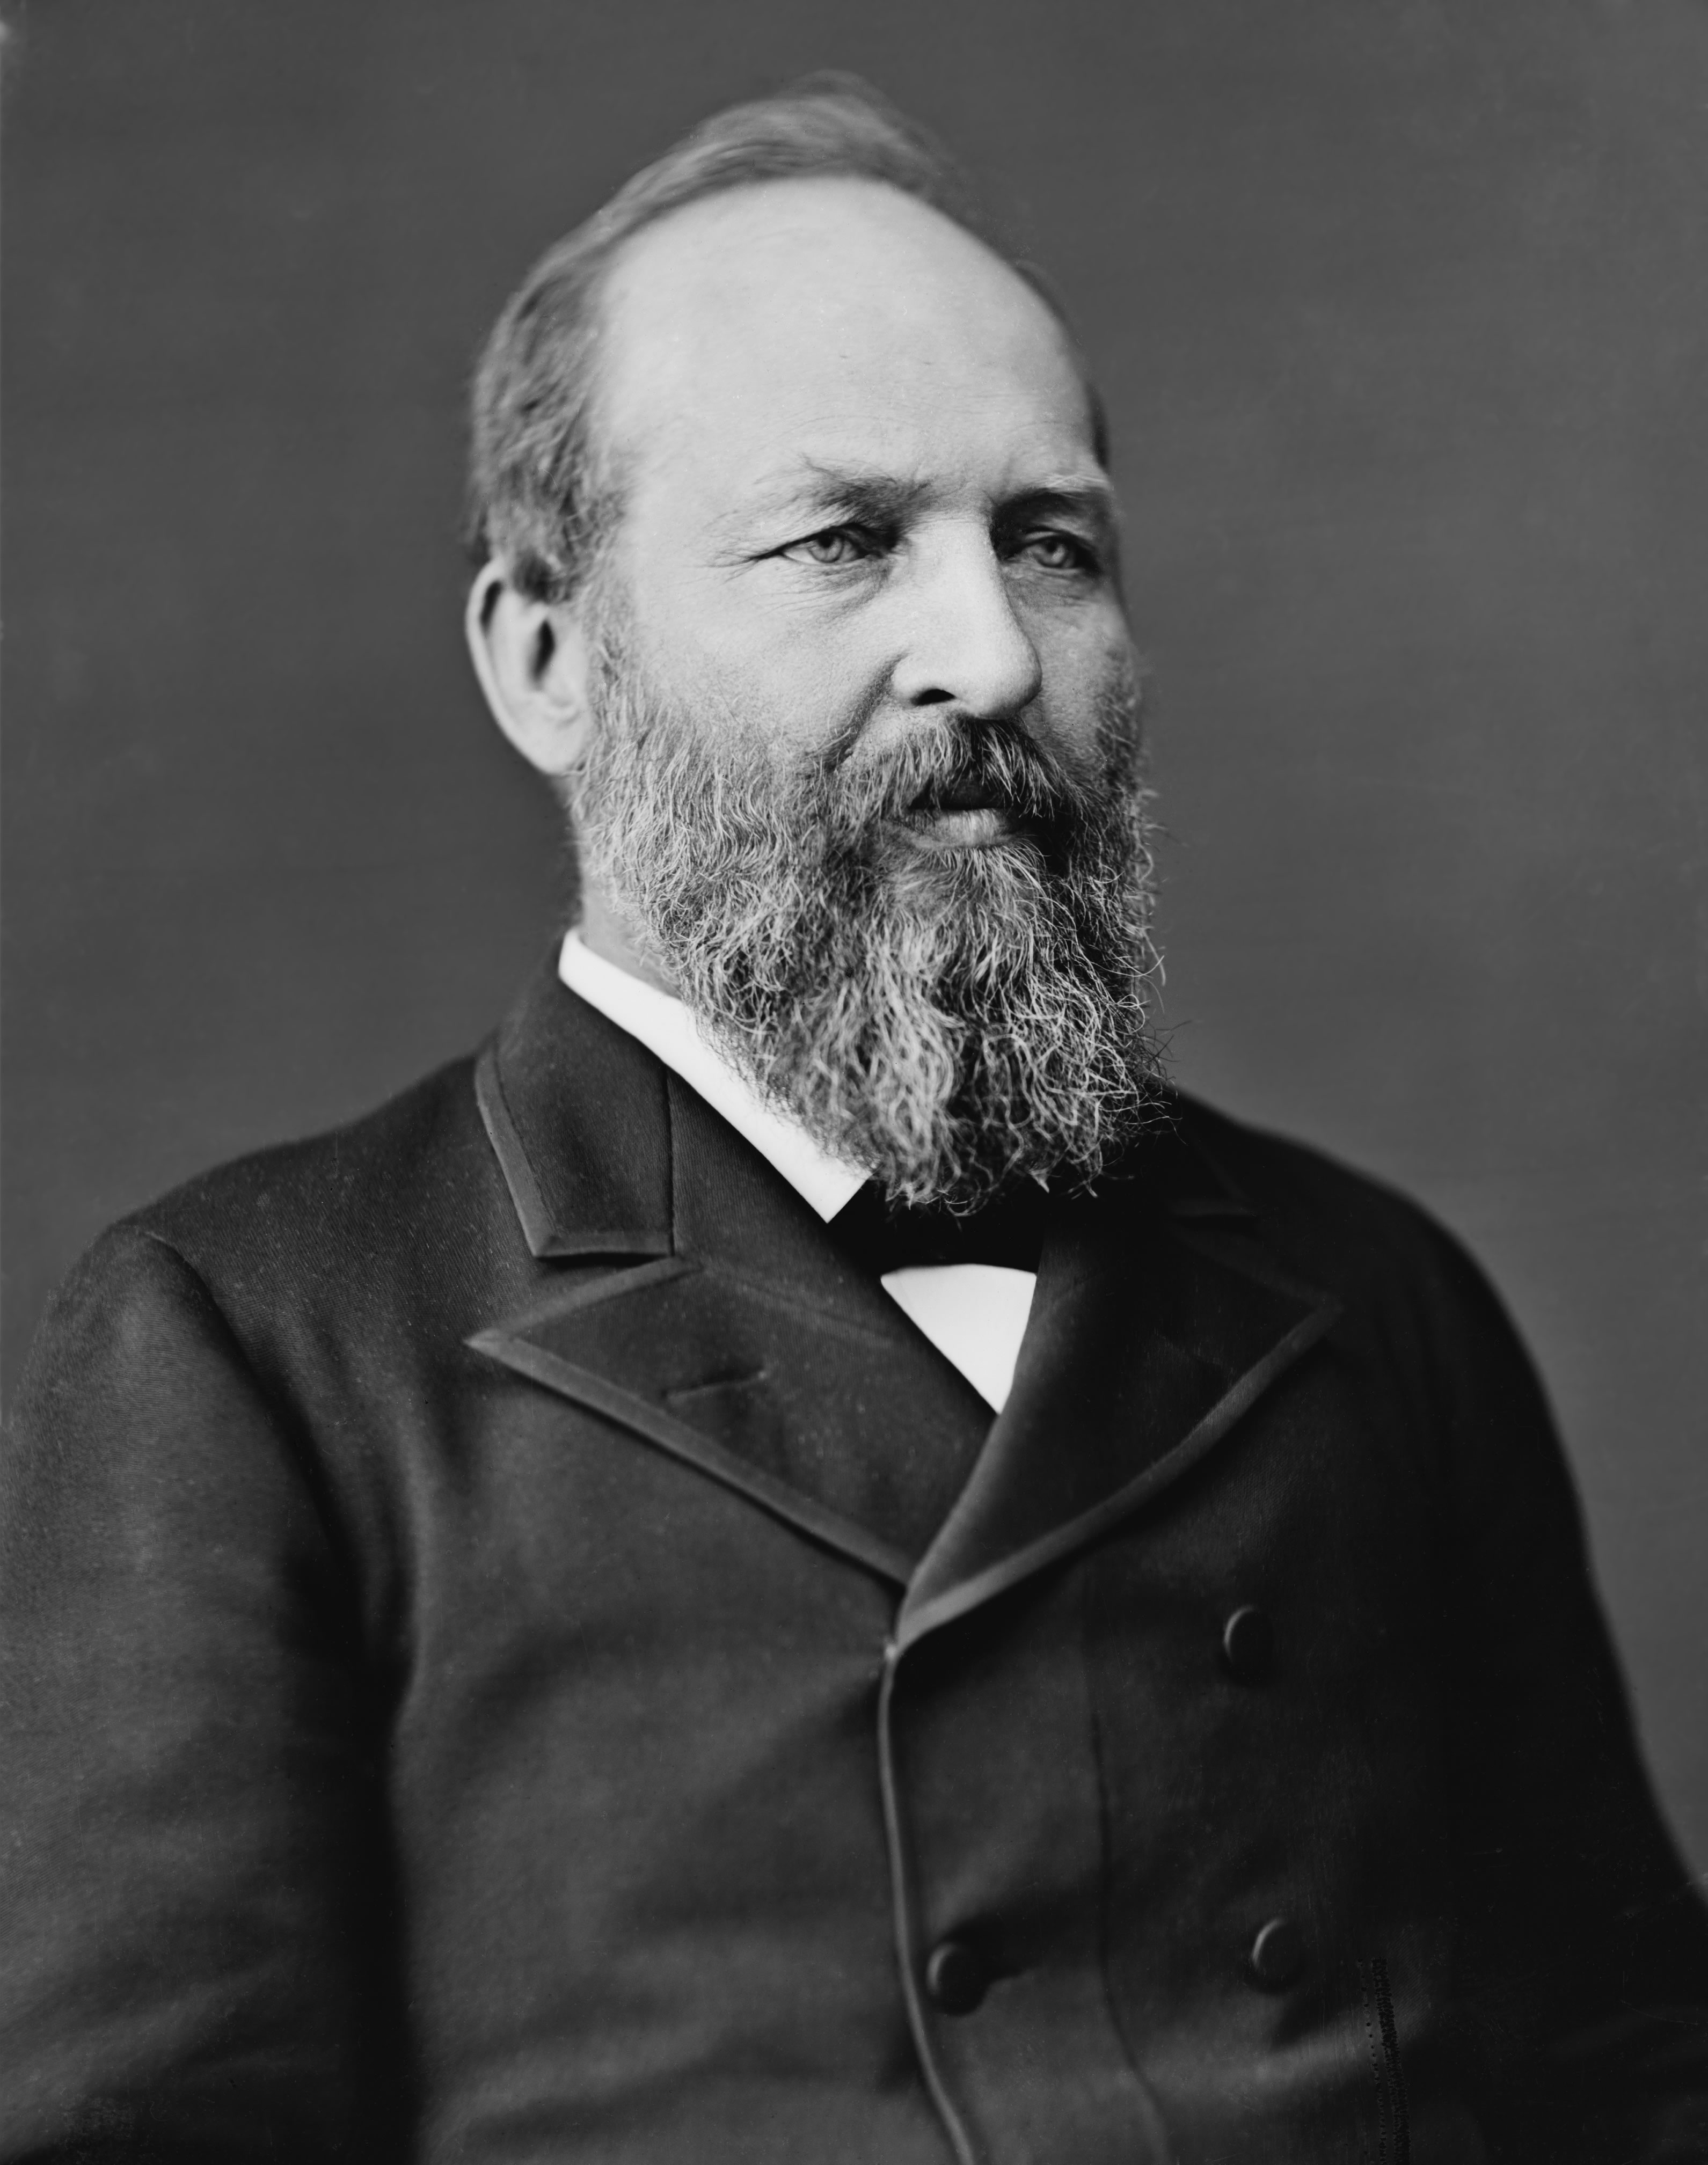 james garfield James a garfield was the twentieth president of the united states he served in 1881 he was born on november 19, 1831 in a one room log cabin in orange, ohio.